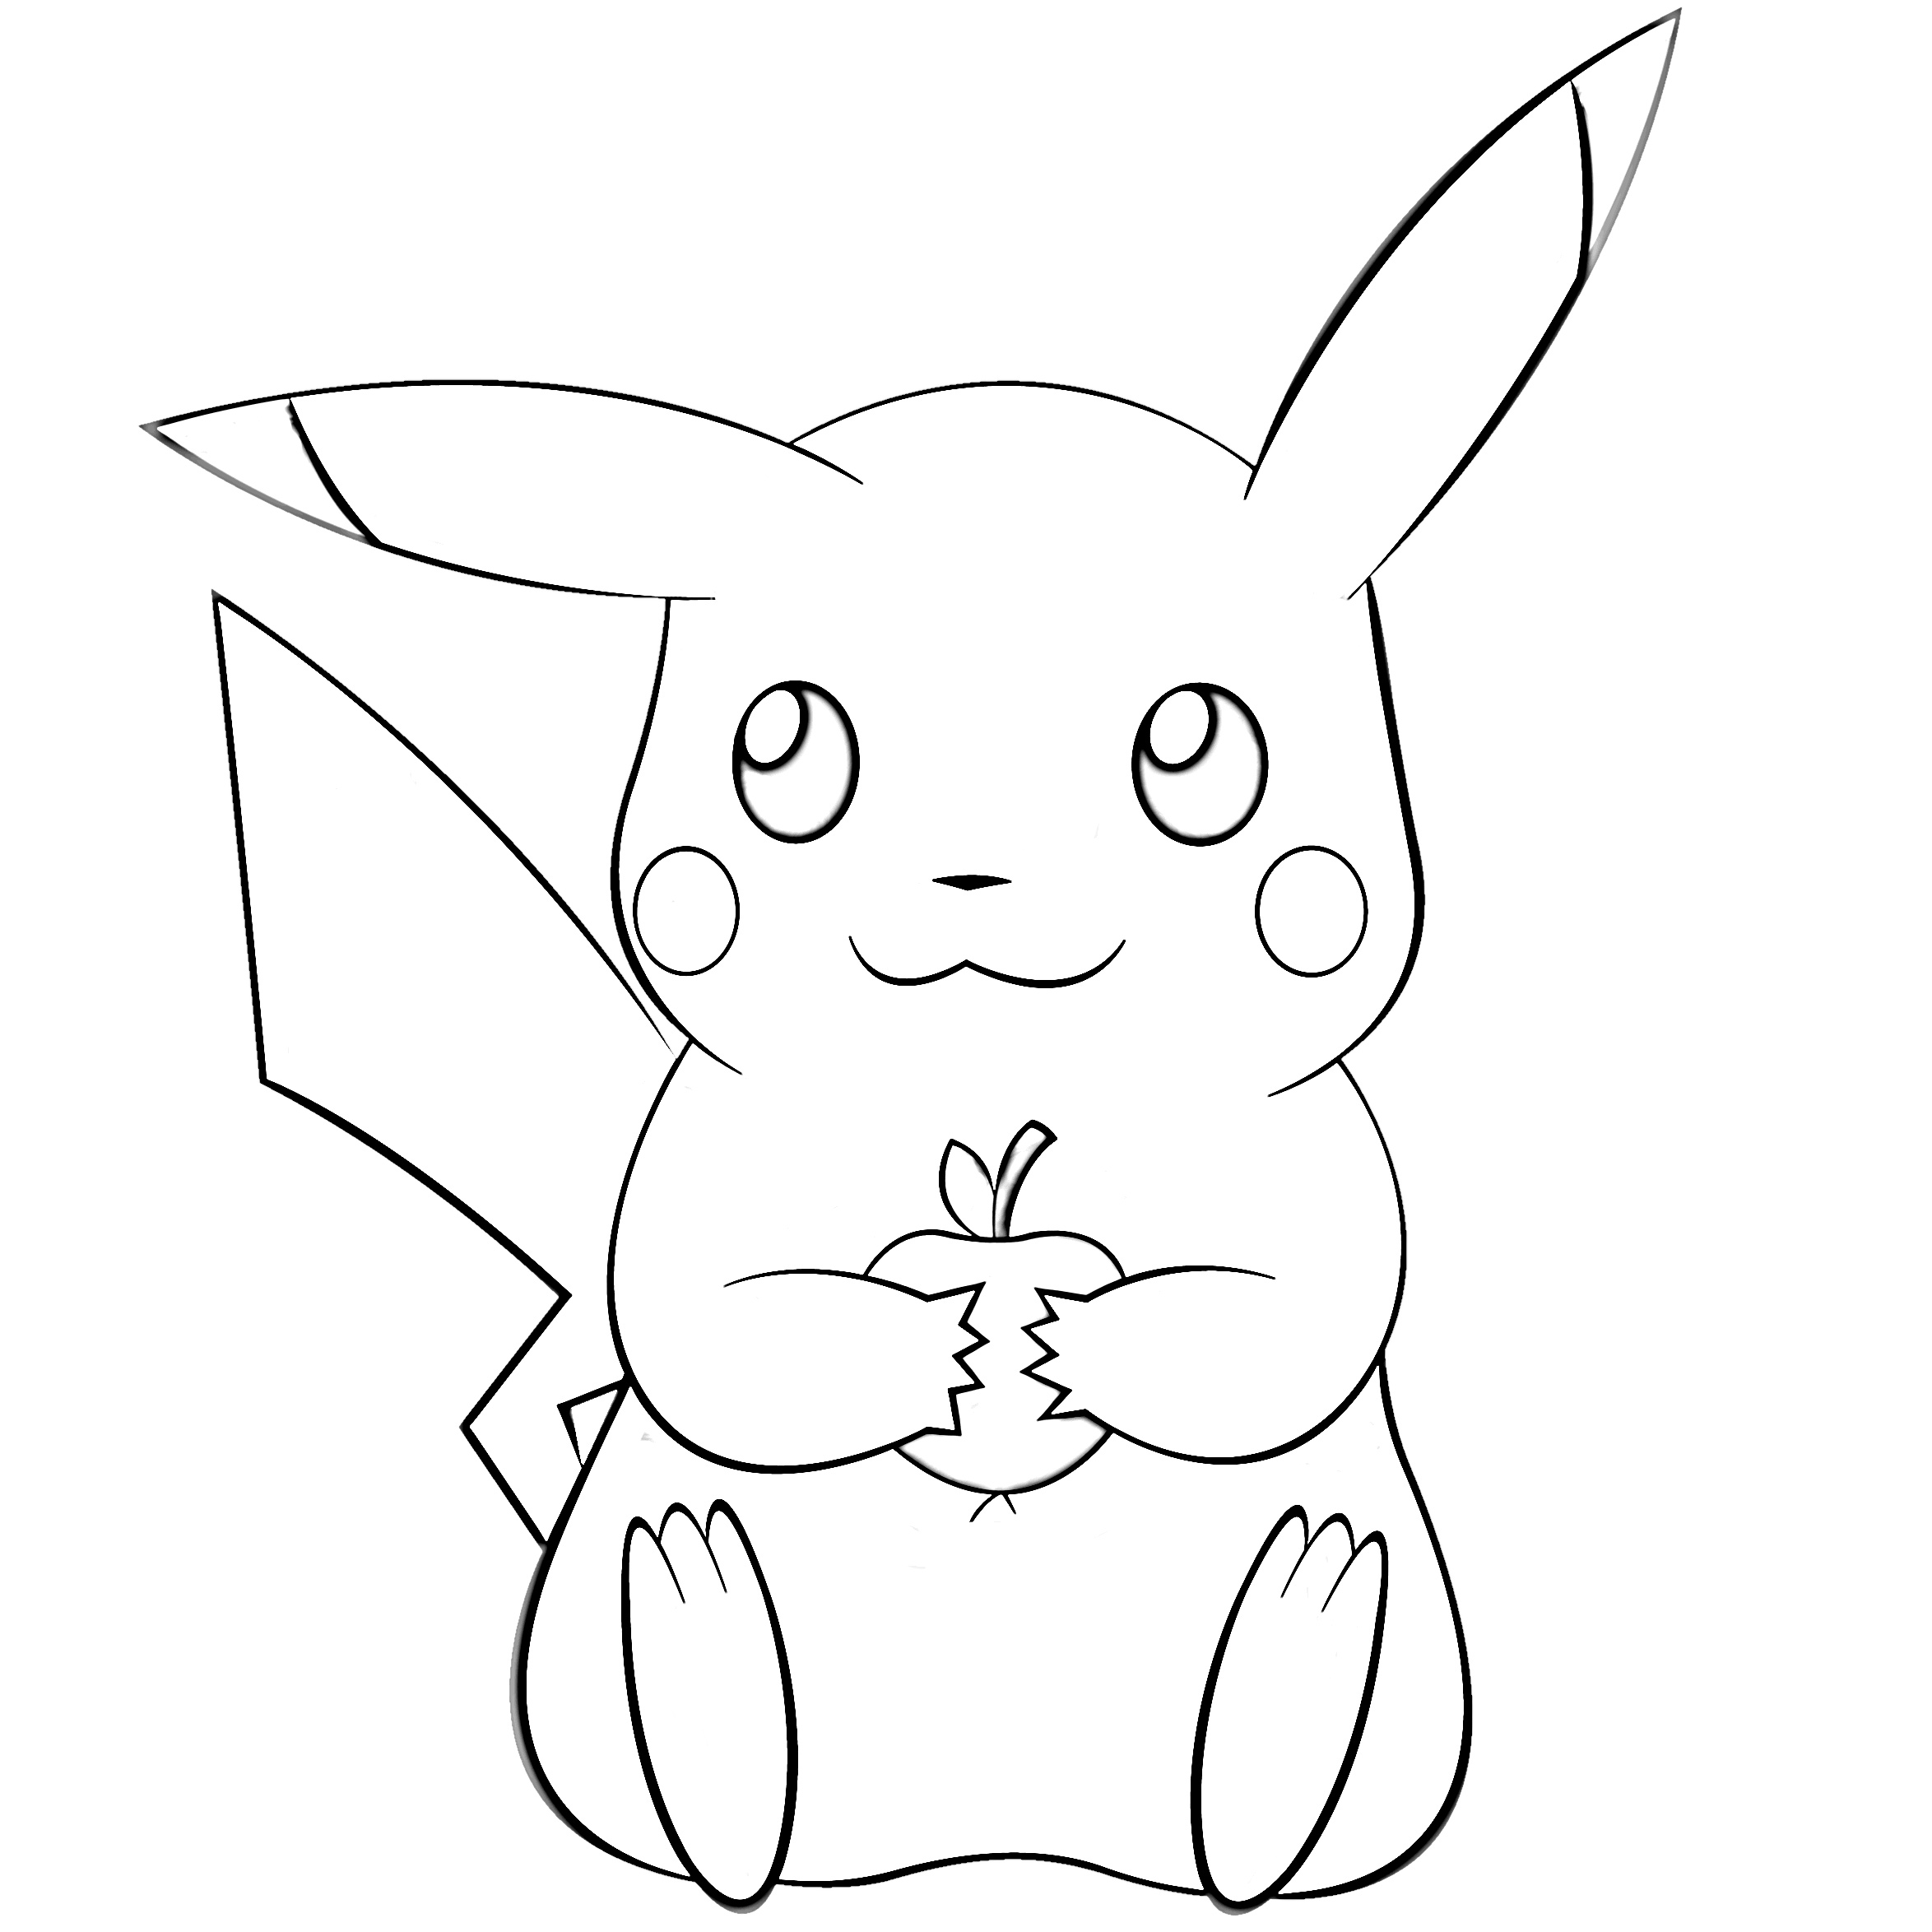 picachu coloring pages pikachu coloring pages head pikachu coloriage picachu pages coloring